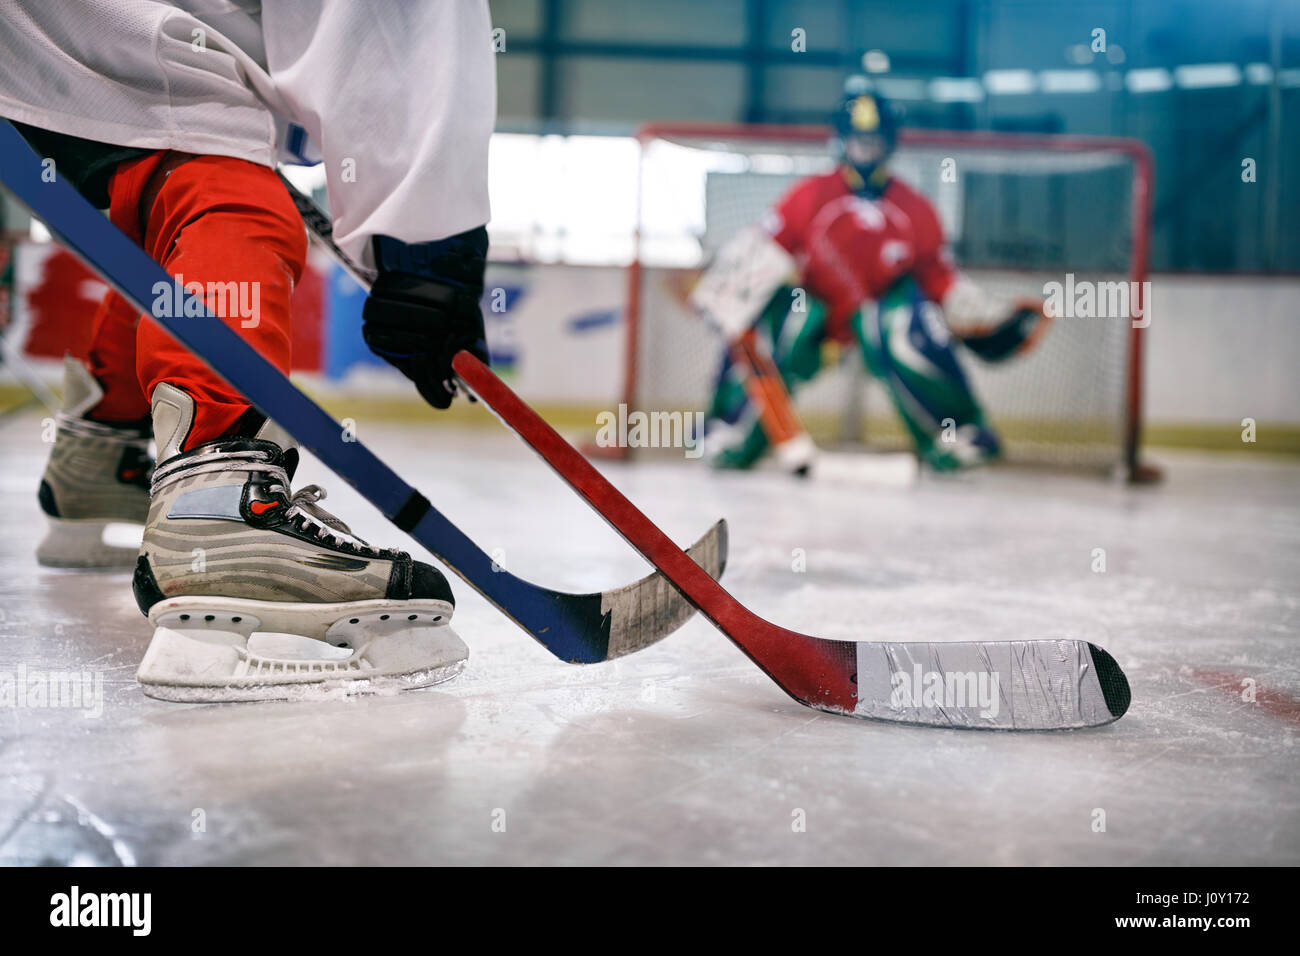 ice hockey player in action kicking with stick on goal - Stock Image